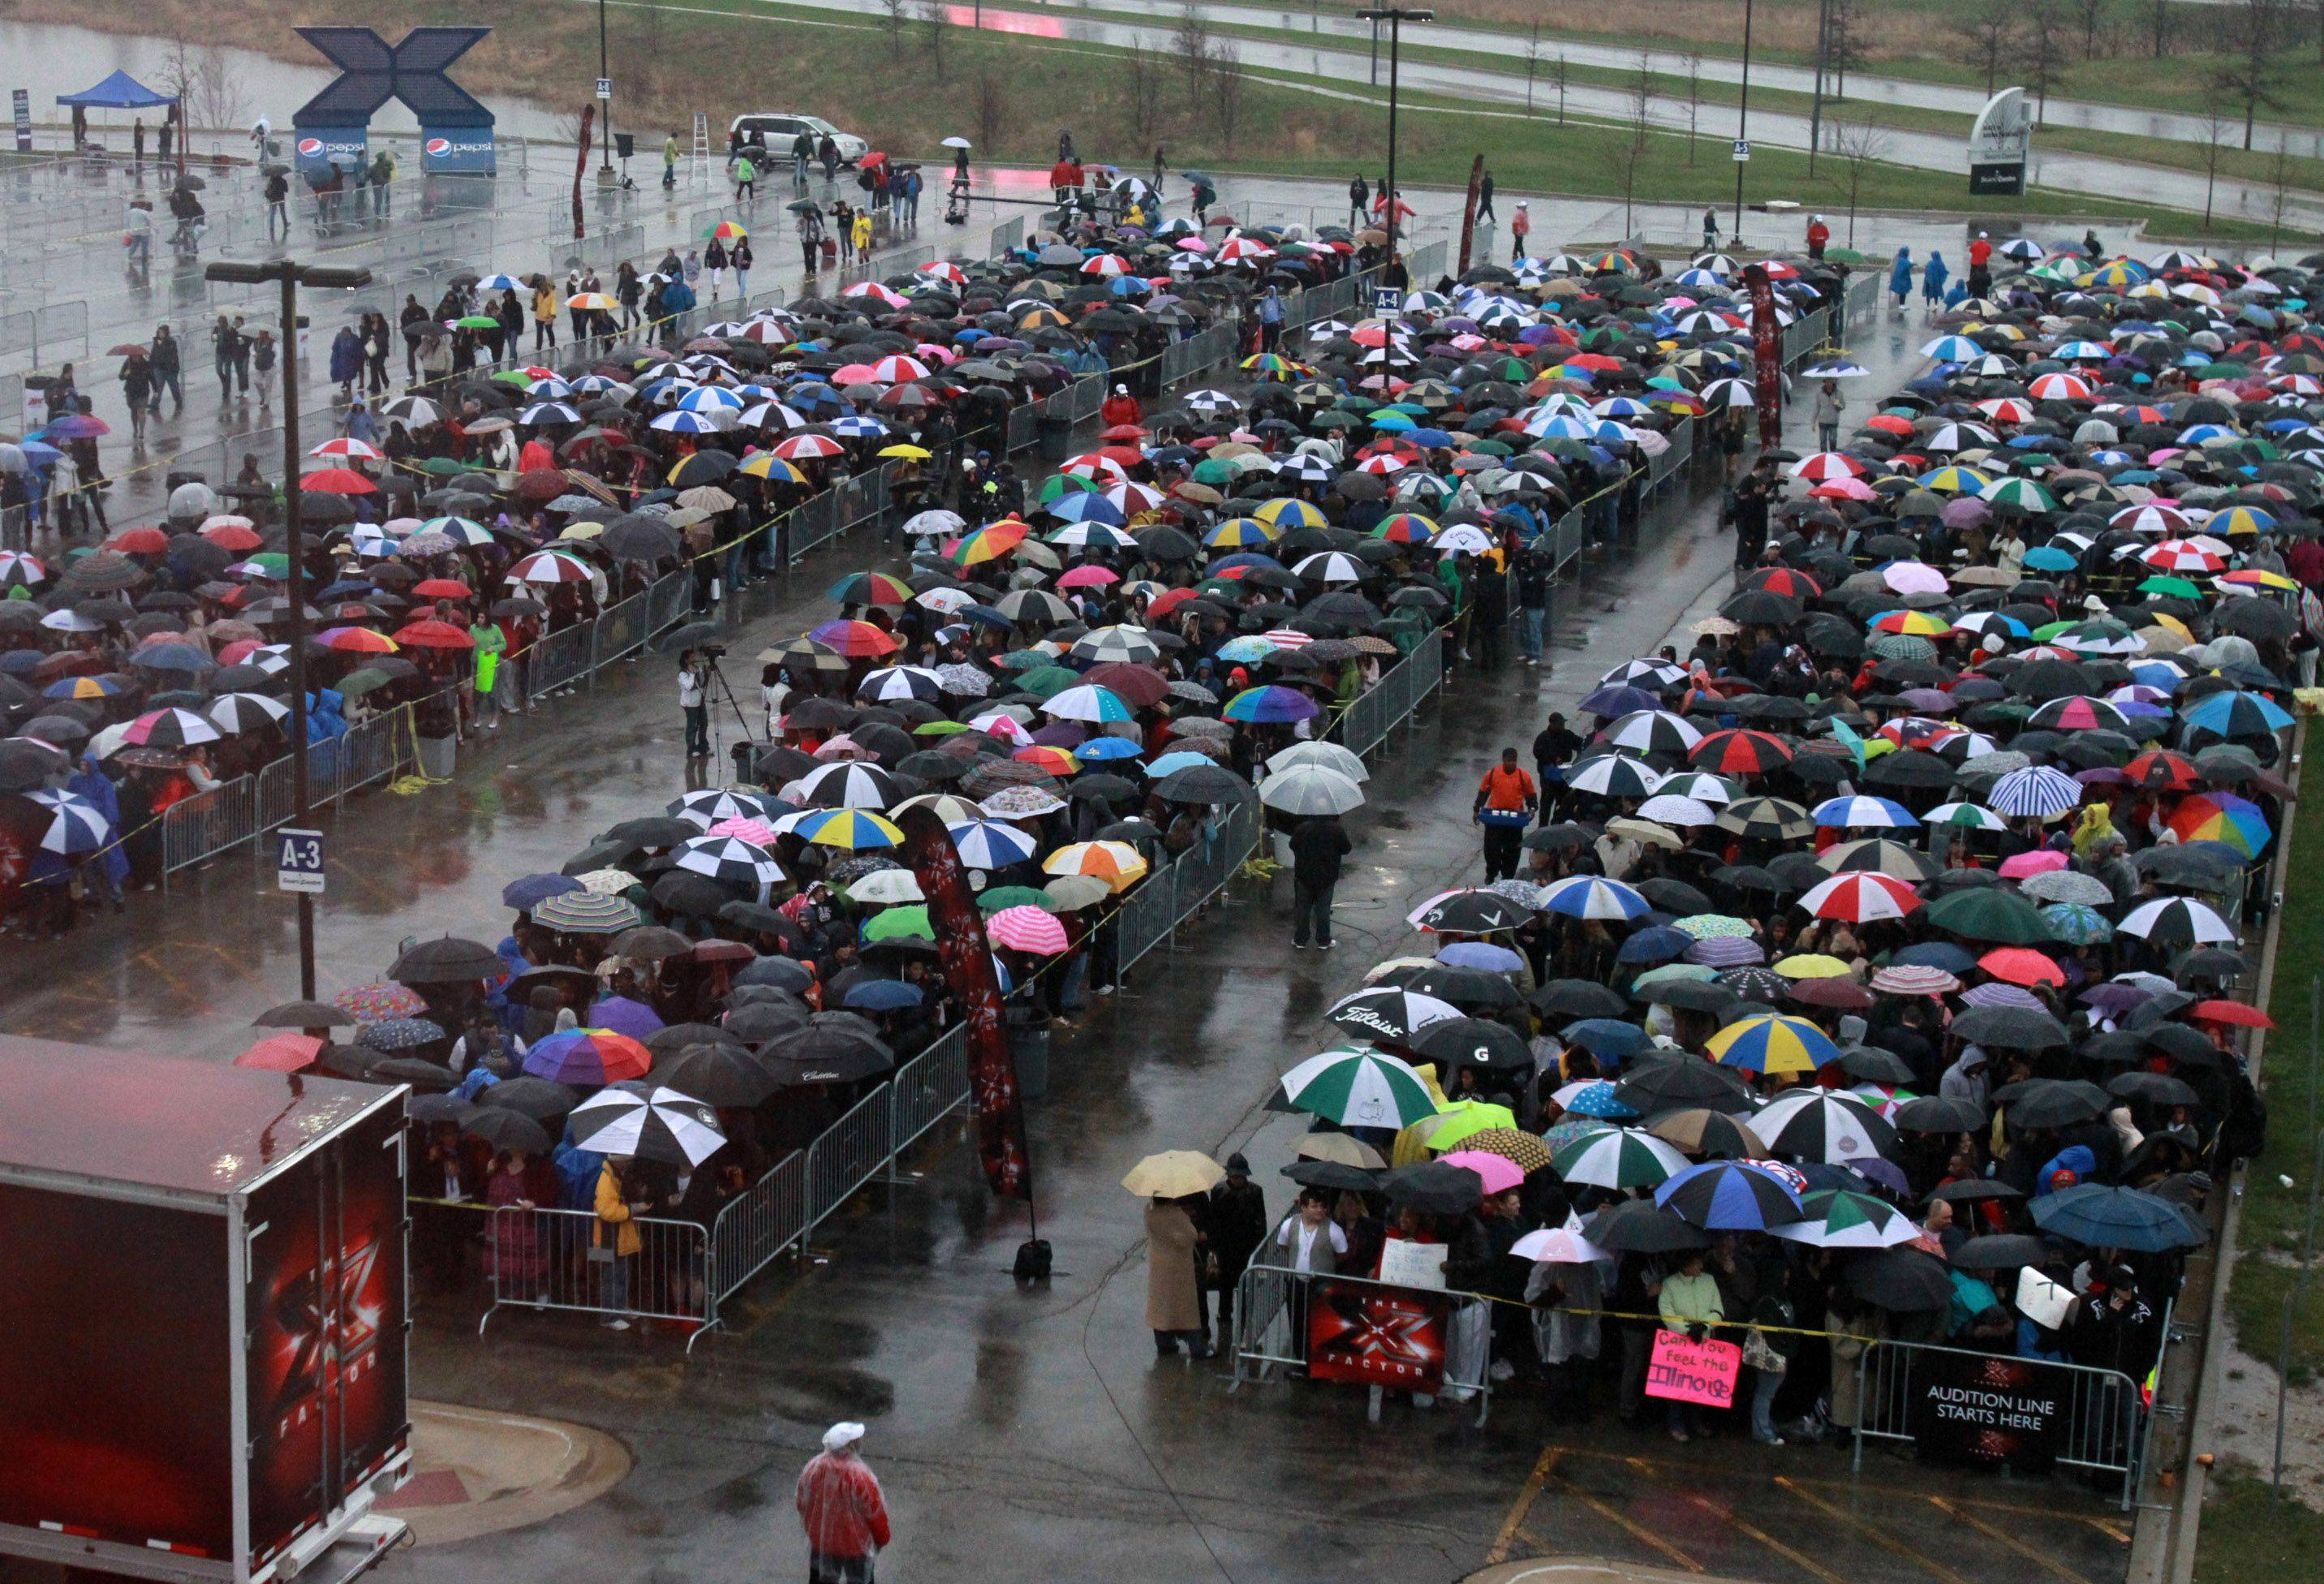 Thousands of suburban hopefuls stand in line in the rain to try out for Simon Cowell's new show, The X Factor, at the Sears Centre in Hoffman Estates Wednesday.